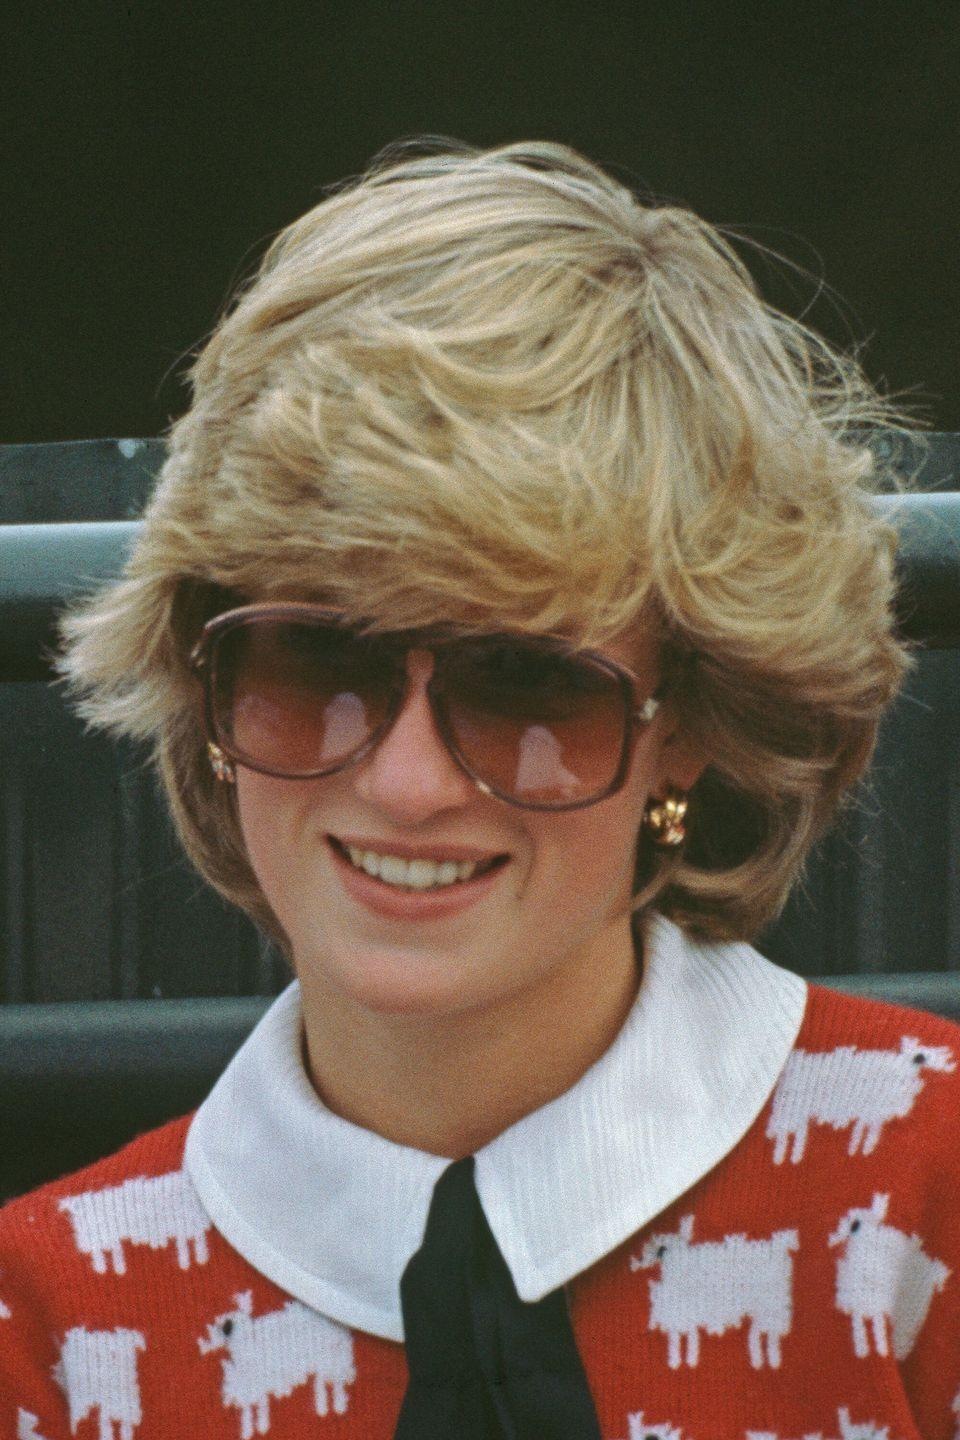 <p>At a polo match wearing the iconic sheep sweater with her hair blown out away from her face.</p>